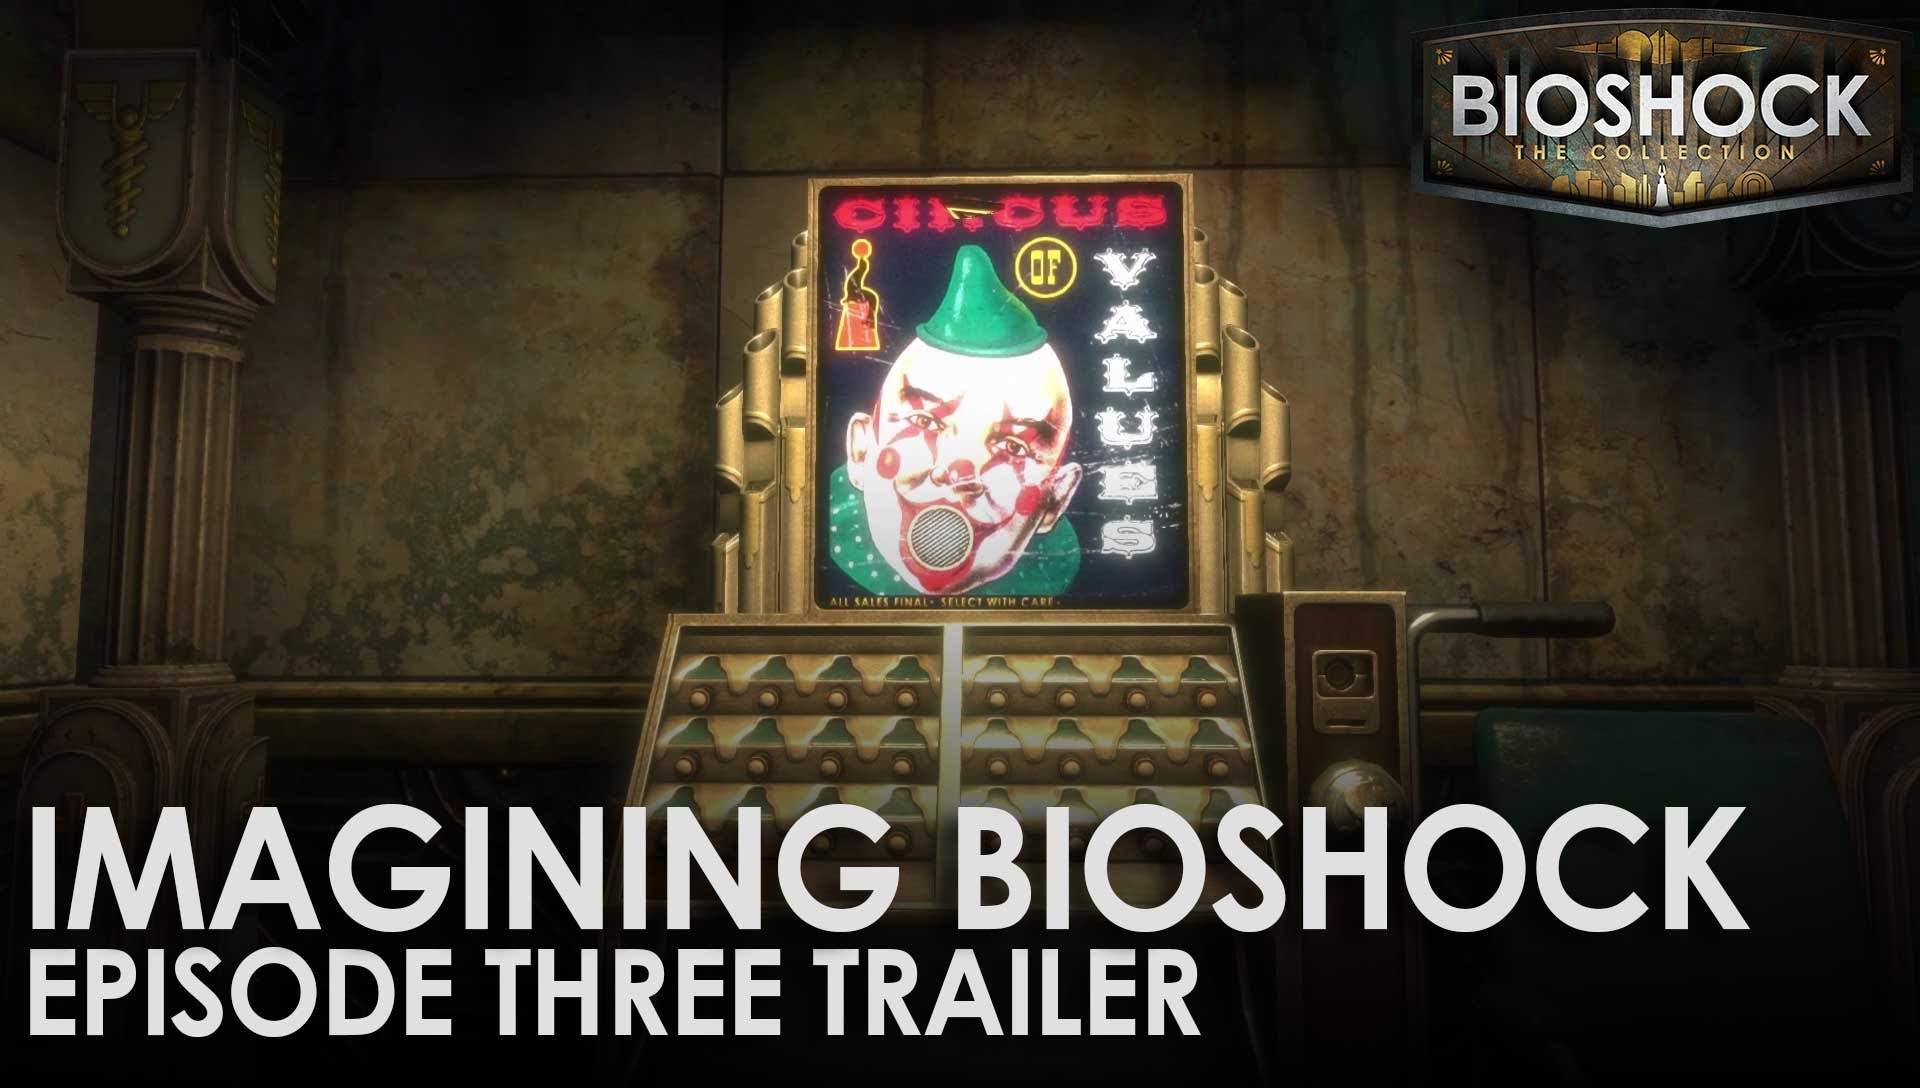 Imagining BioShock: Episode Three Trailer